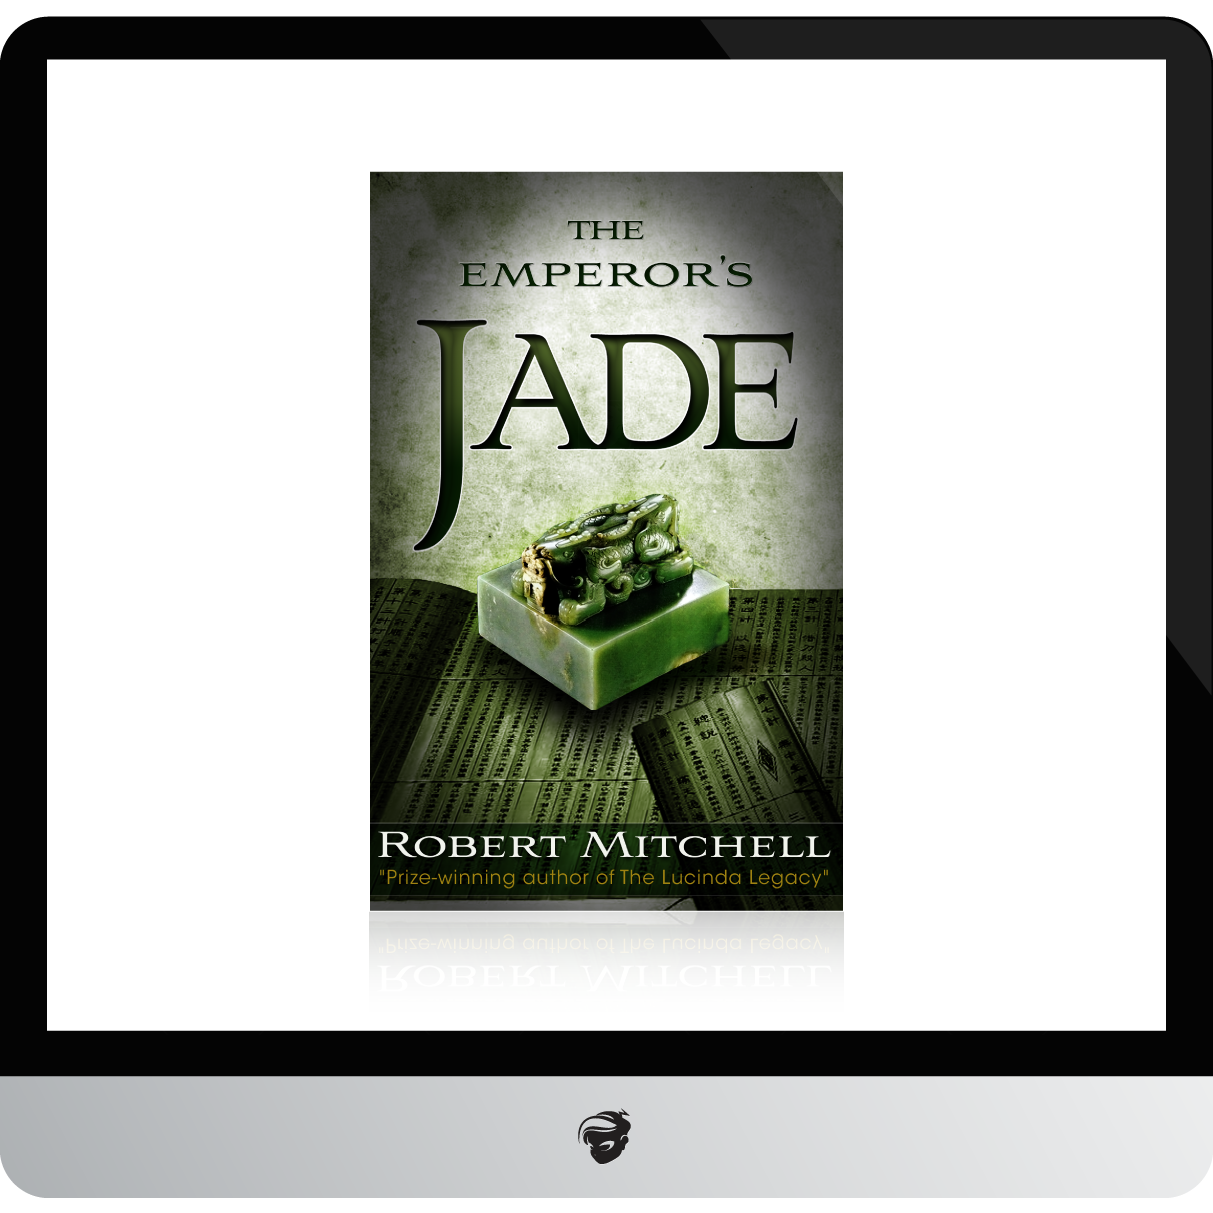 Book Cover Design by zesthar - Entry No. 84 in the Book Cover Design Contest Book Cover Design for The Emperor's Jade.